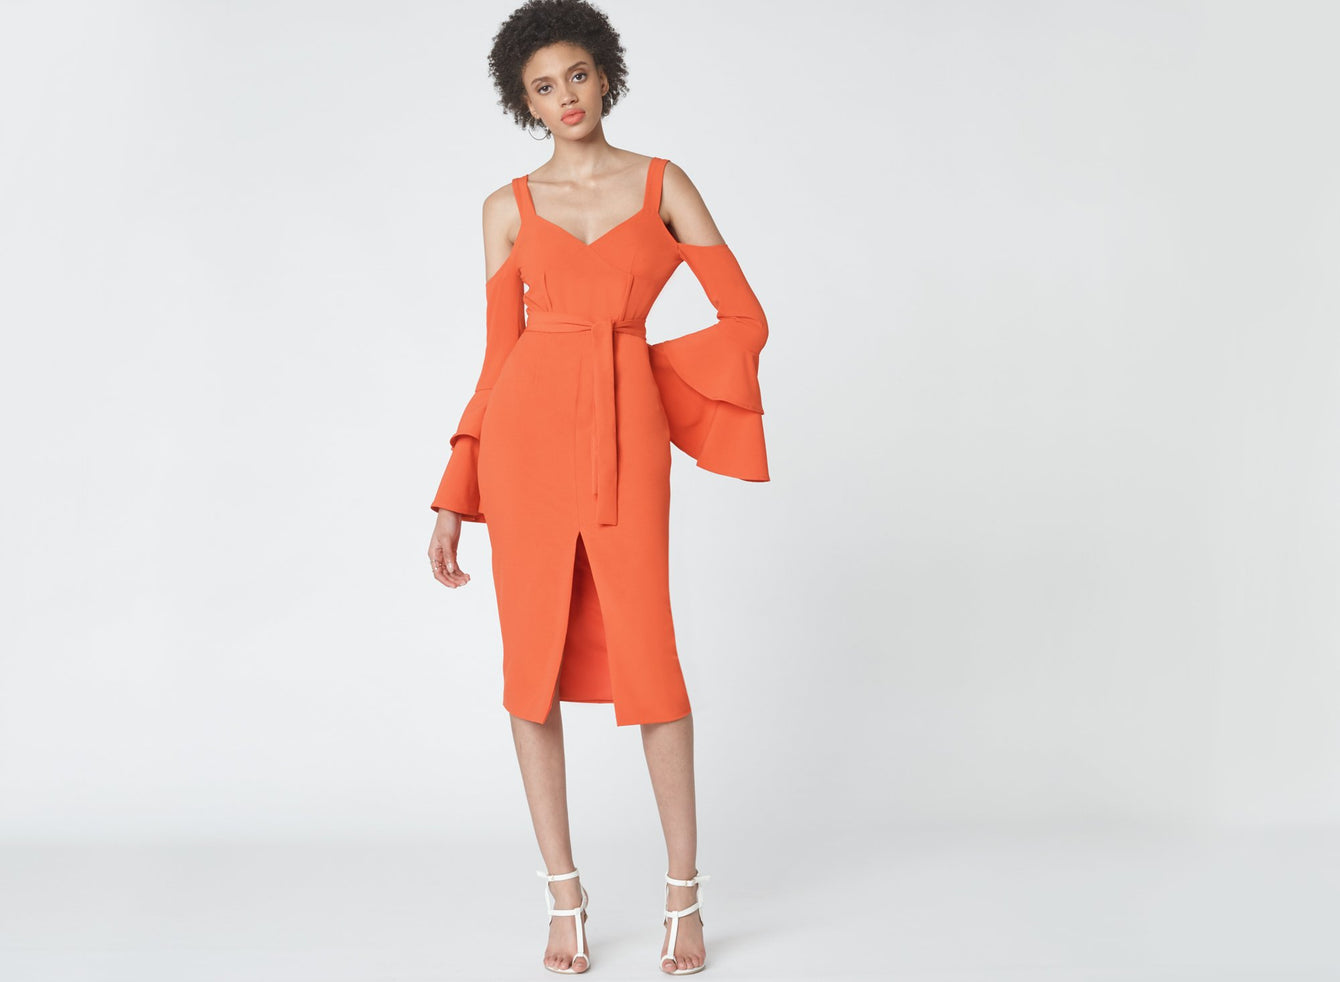 Ruffle Sleeve Cold Shoulder Dress in Flame Orange